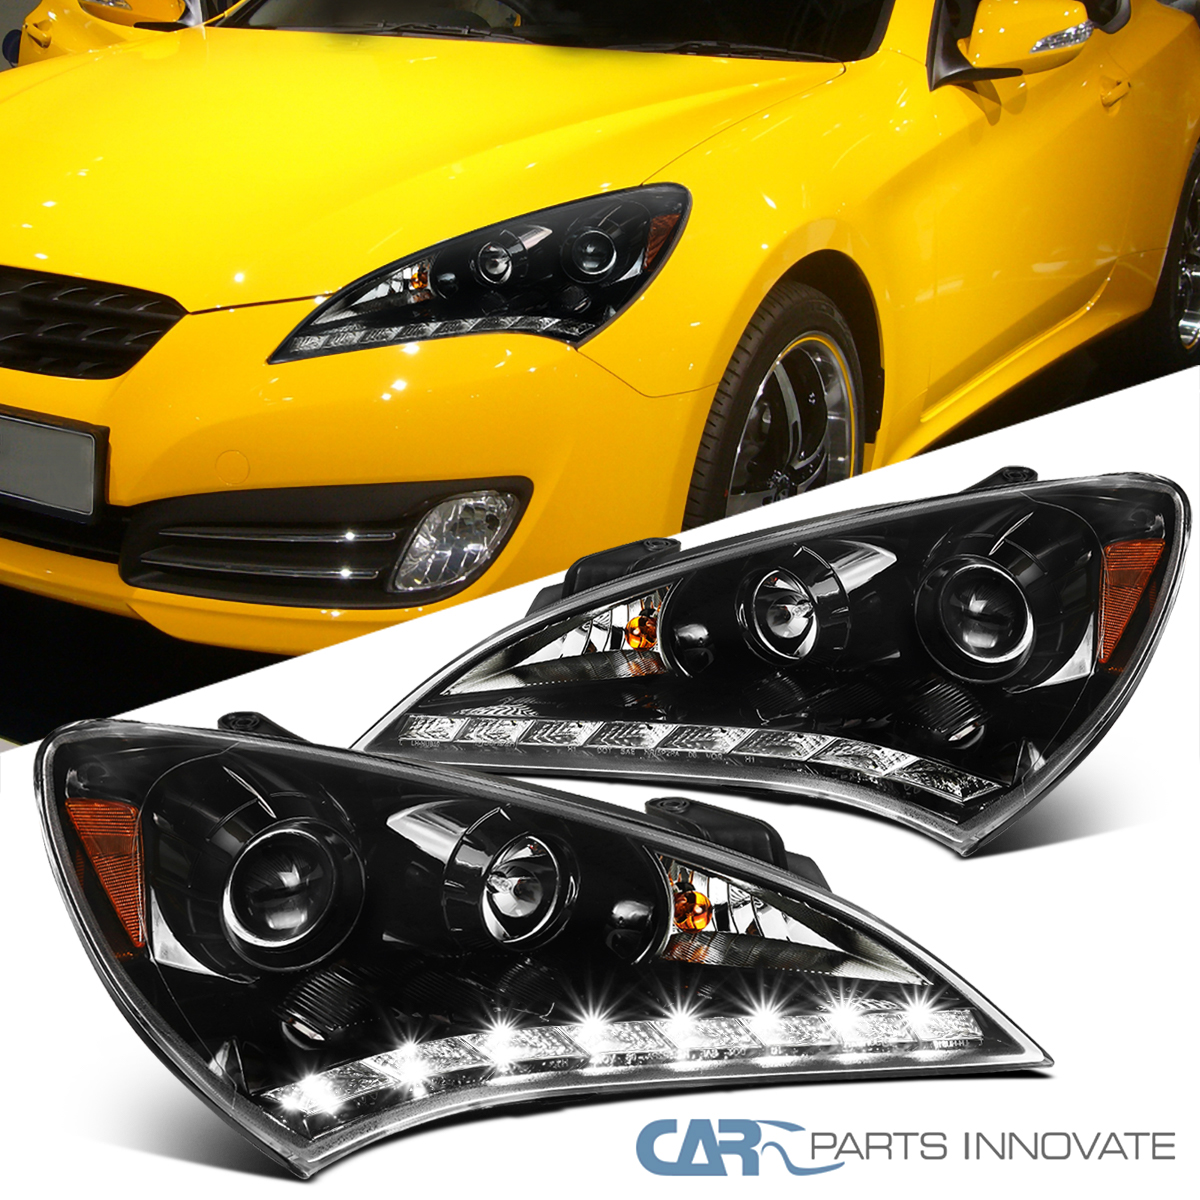 Details About Fit 10 12 Hyundai Genesis Coupe Pearl Black Smd Led Clear Projector Headlights